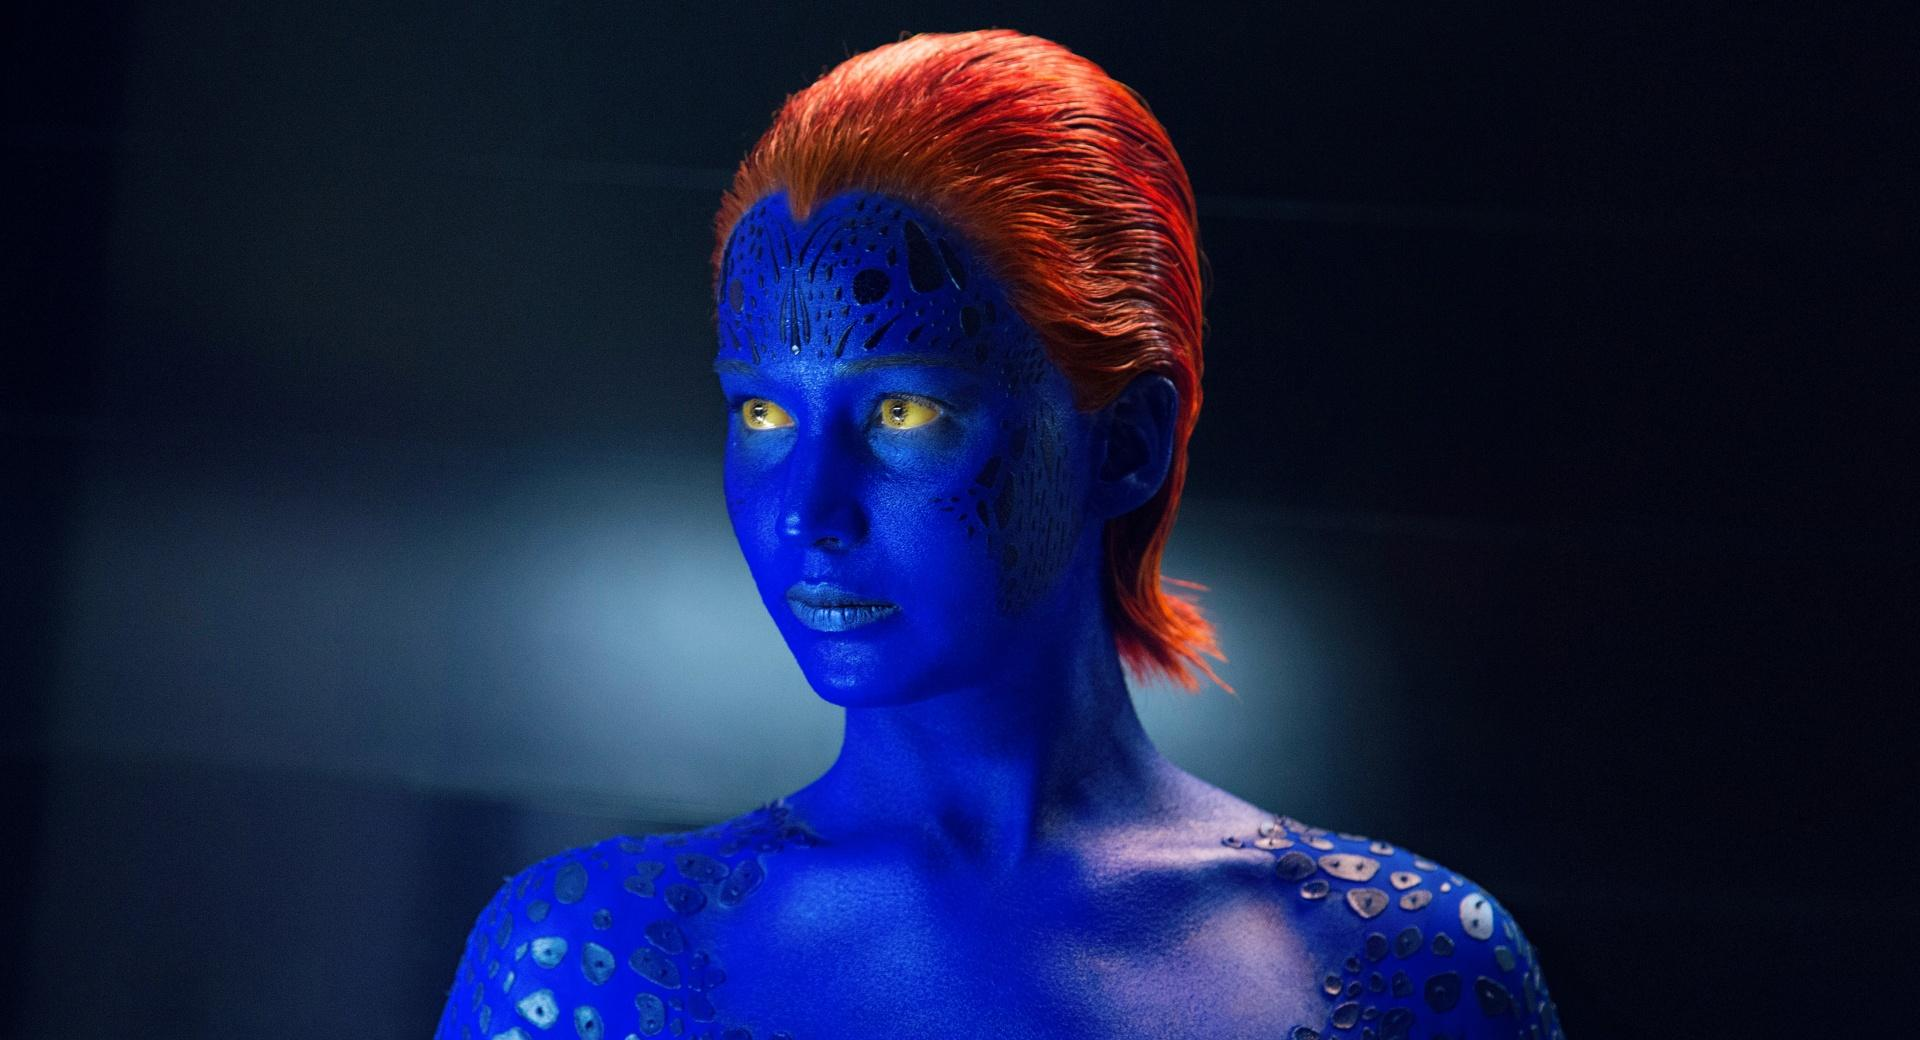 X-Men Days Of Future Past Mystique at 320 x 480 iPhone size wallpapers HD quality